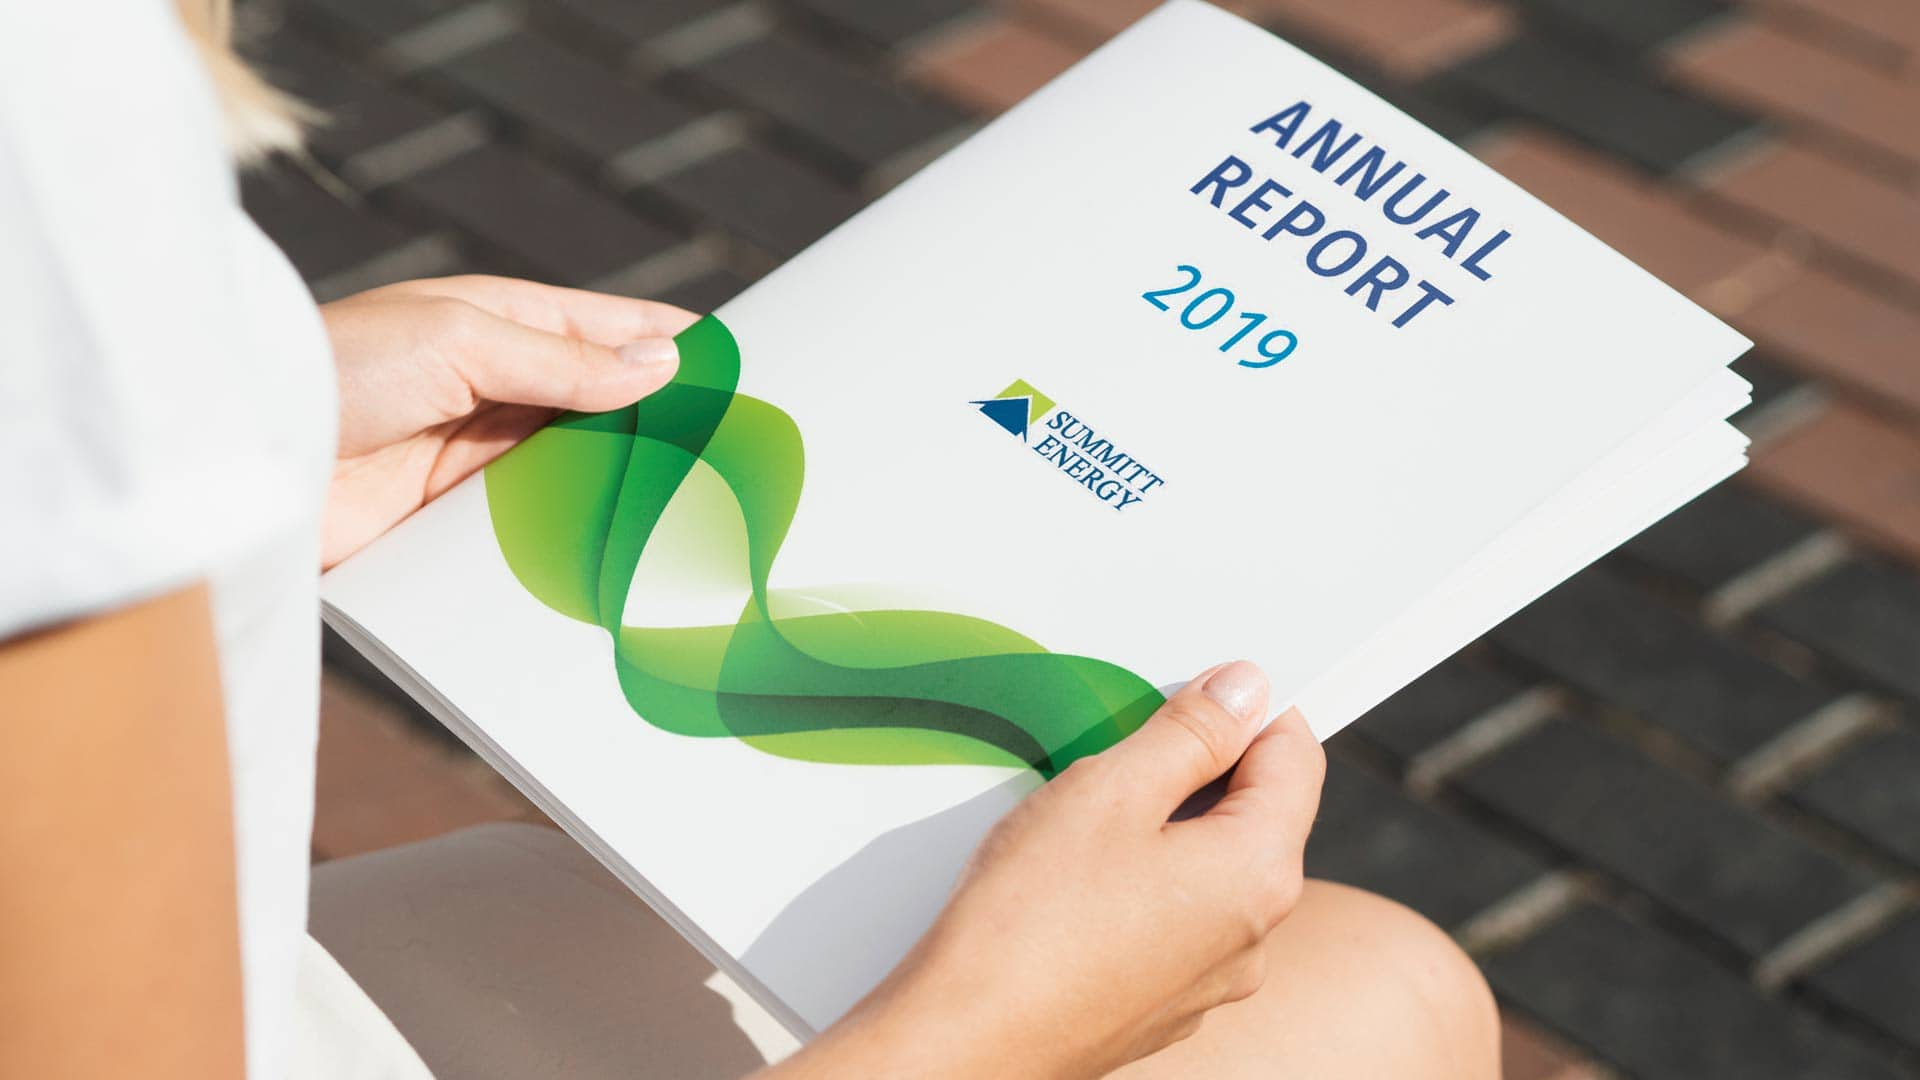 Annual report of energy company